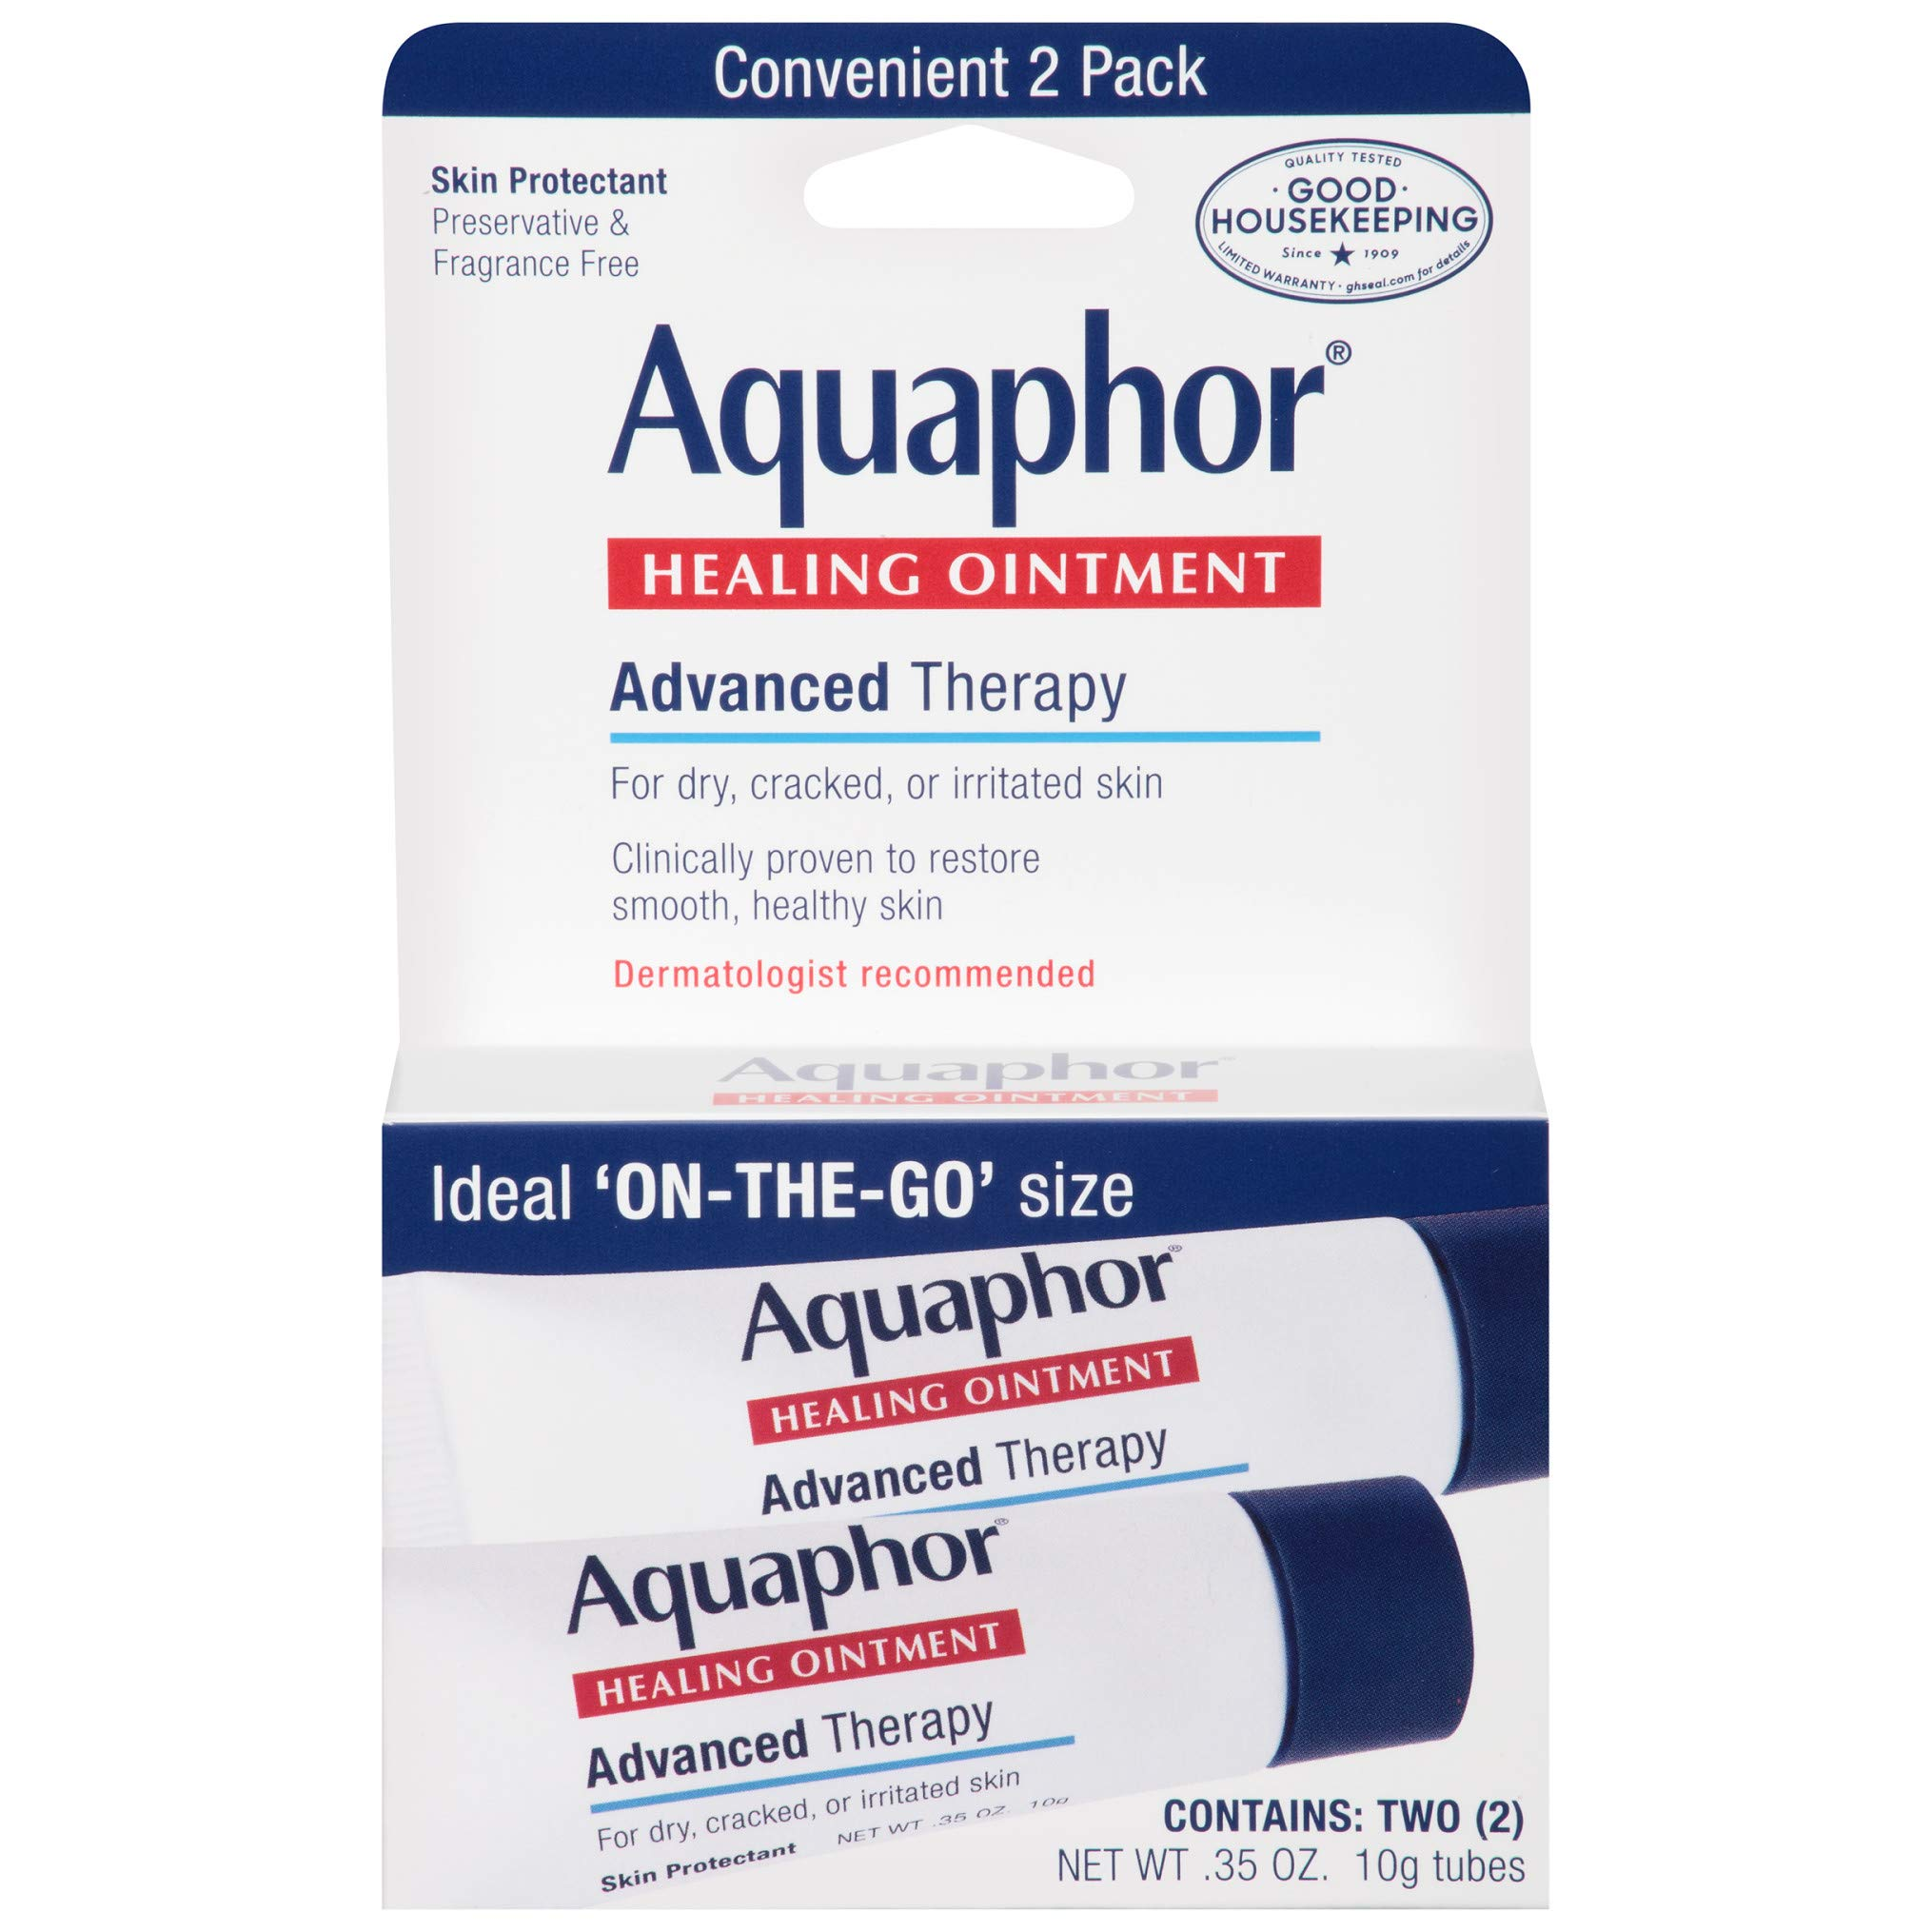 Aquaphor Healing Ointment - To Go Pack, Two 0.35 Oz Tubes